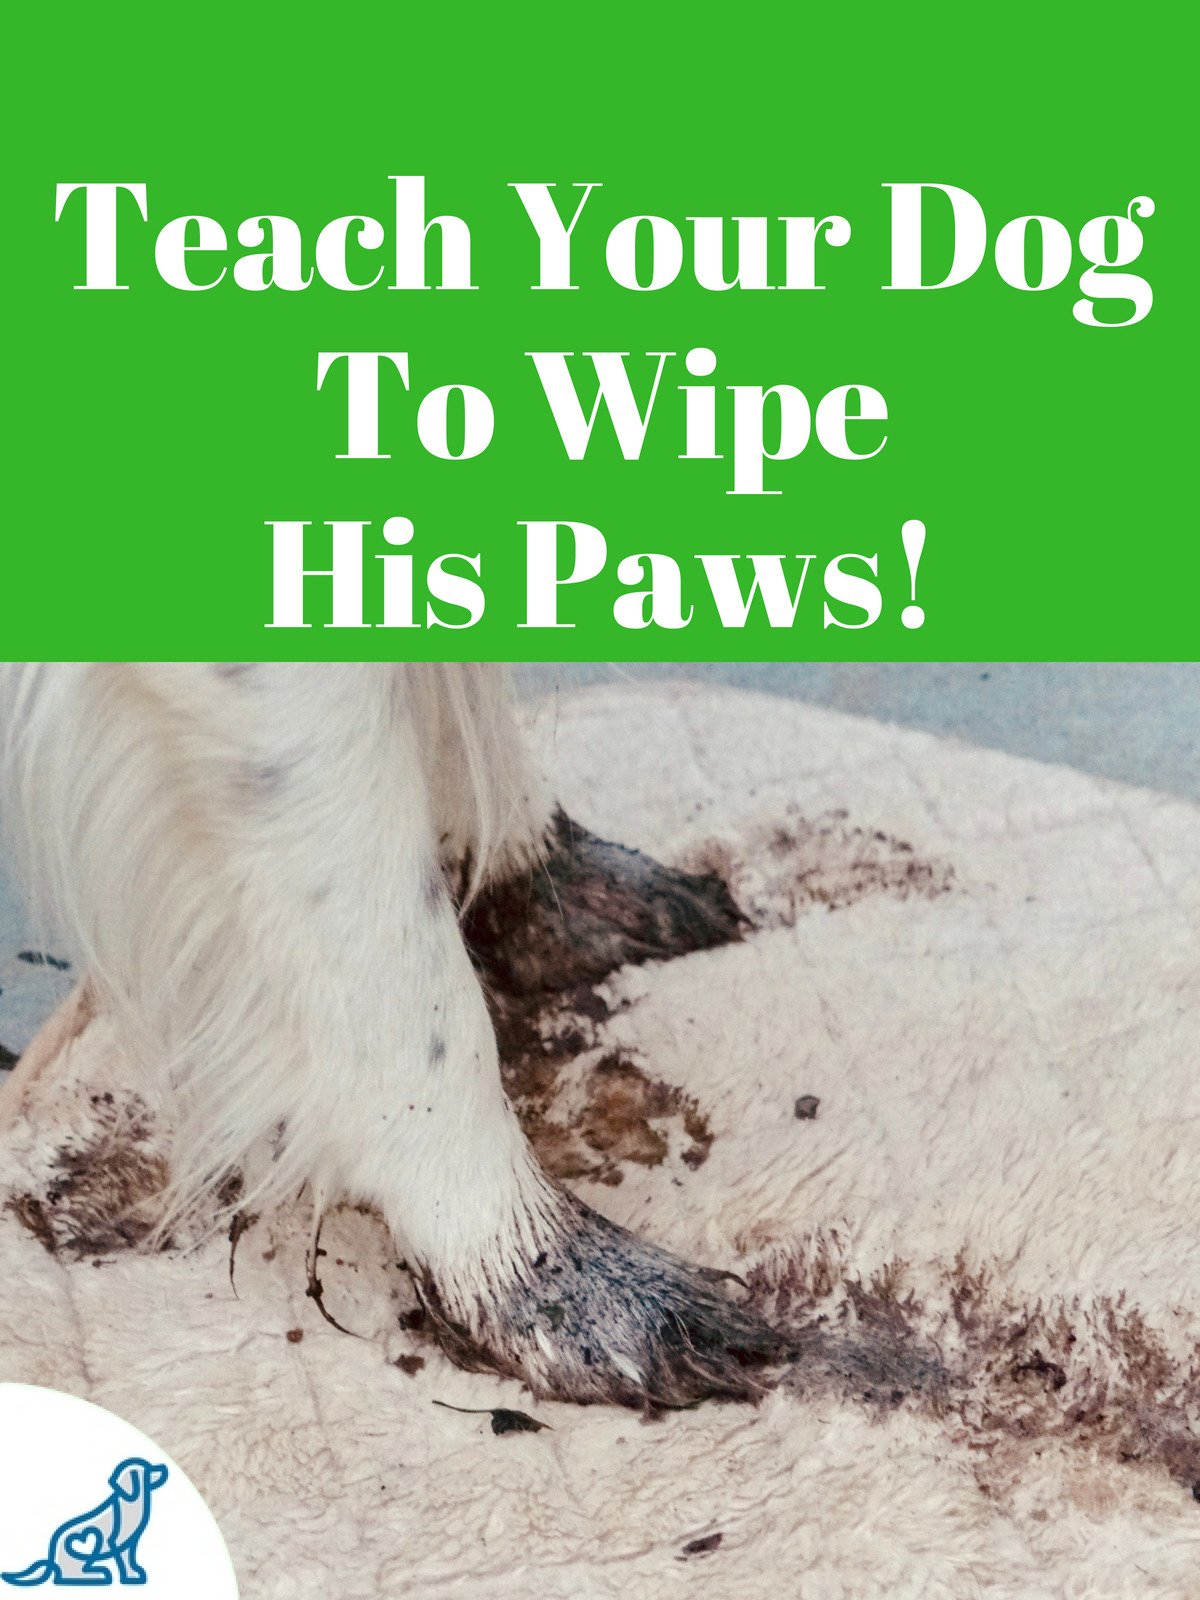 Teach Your Dog To Wipe His Paws